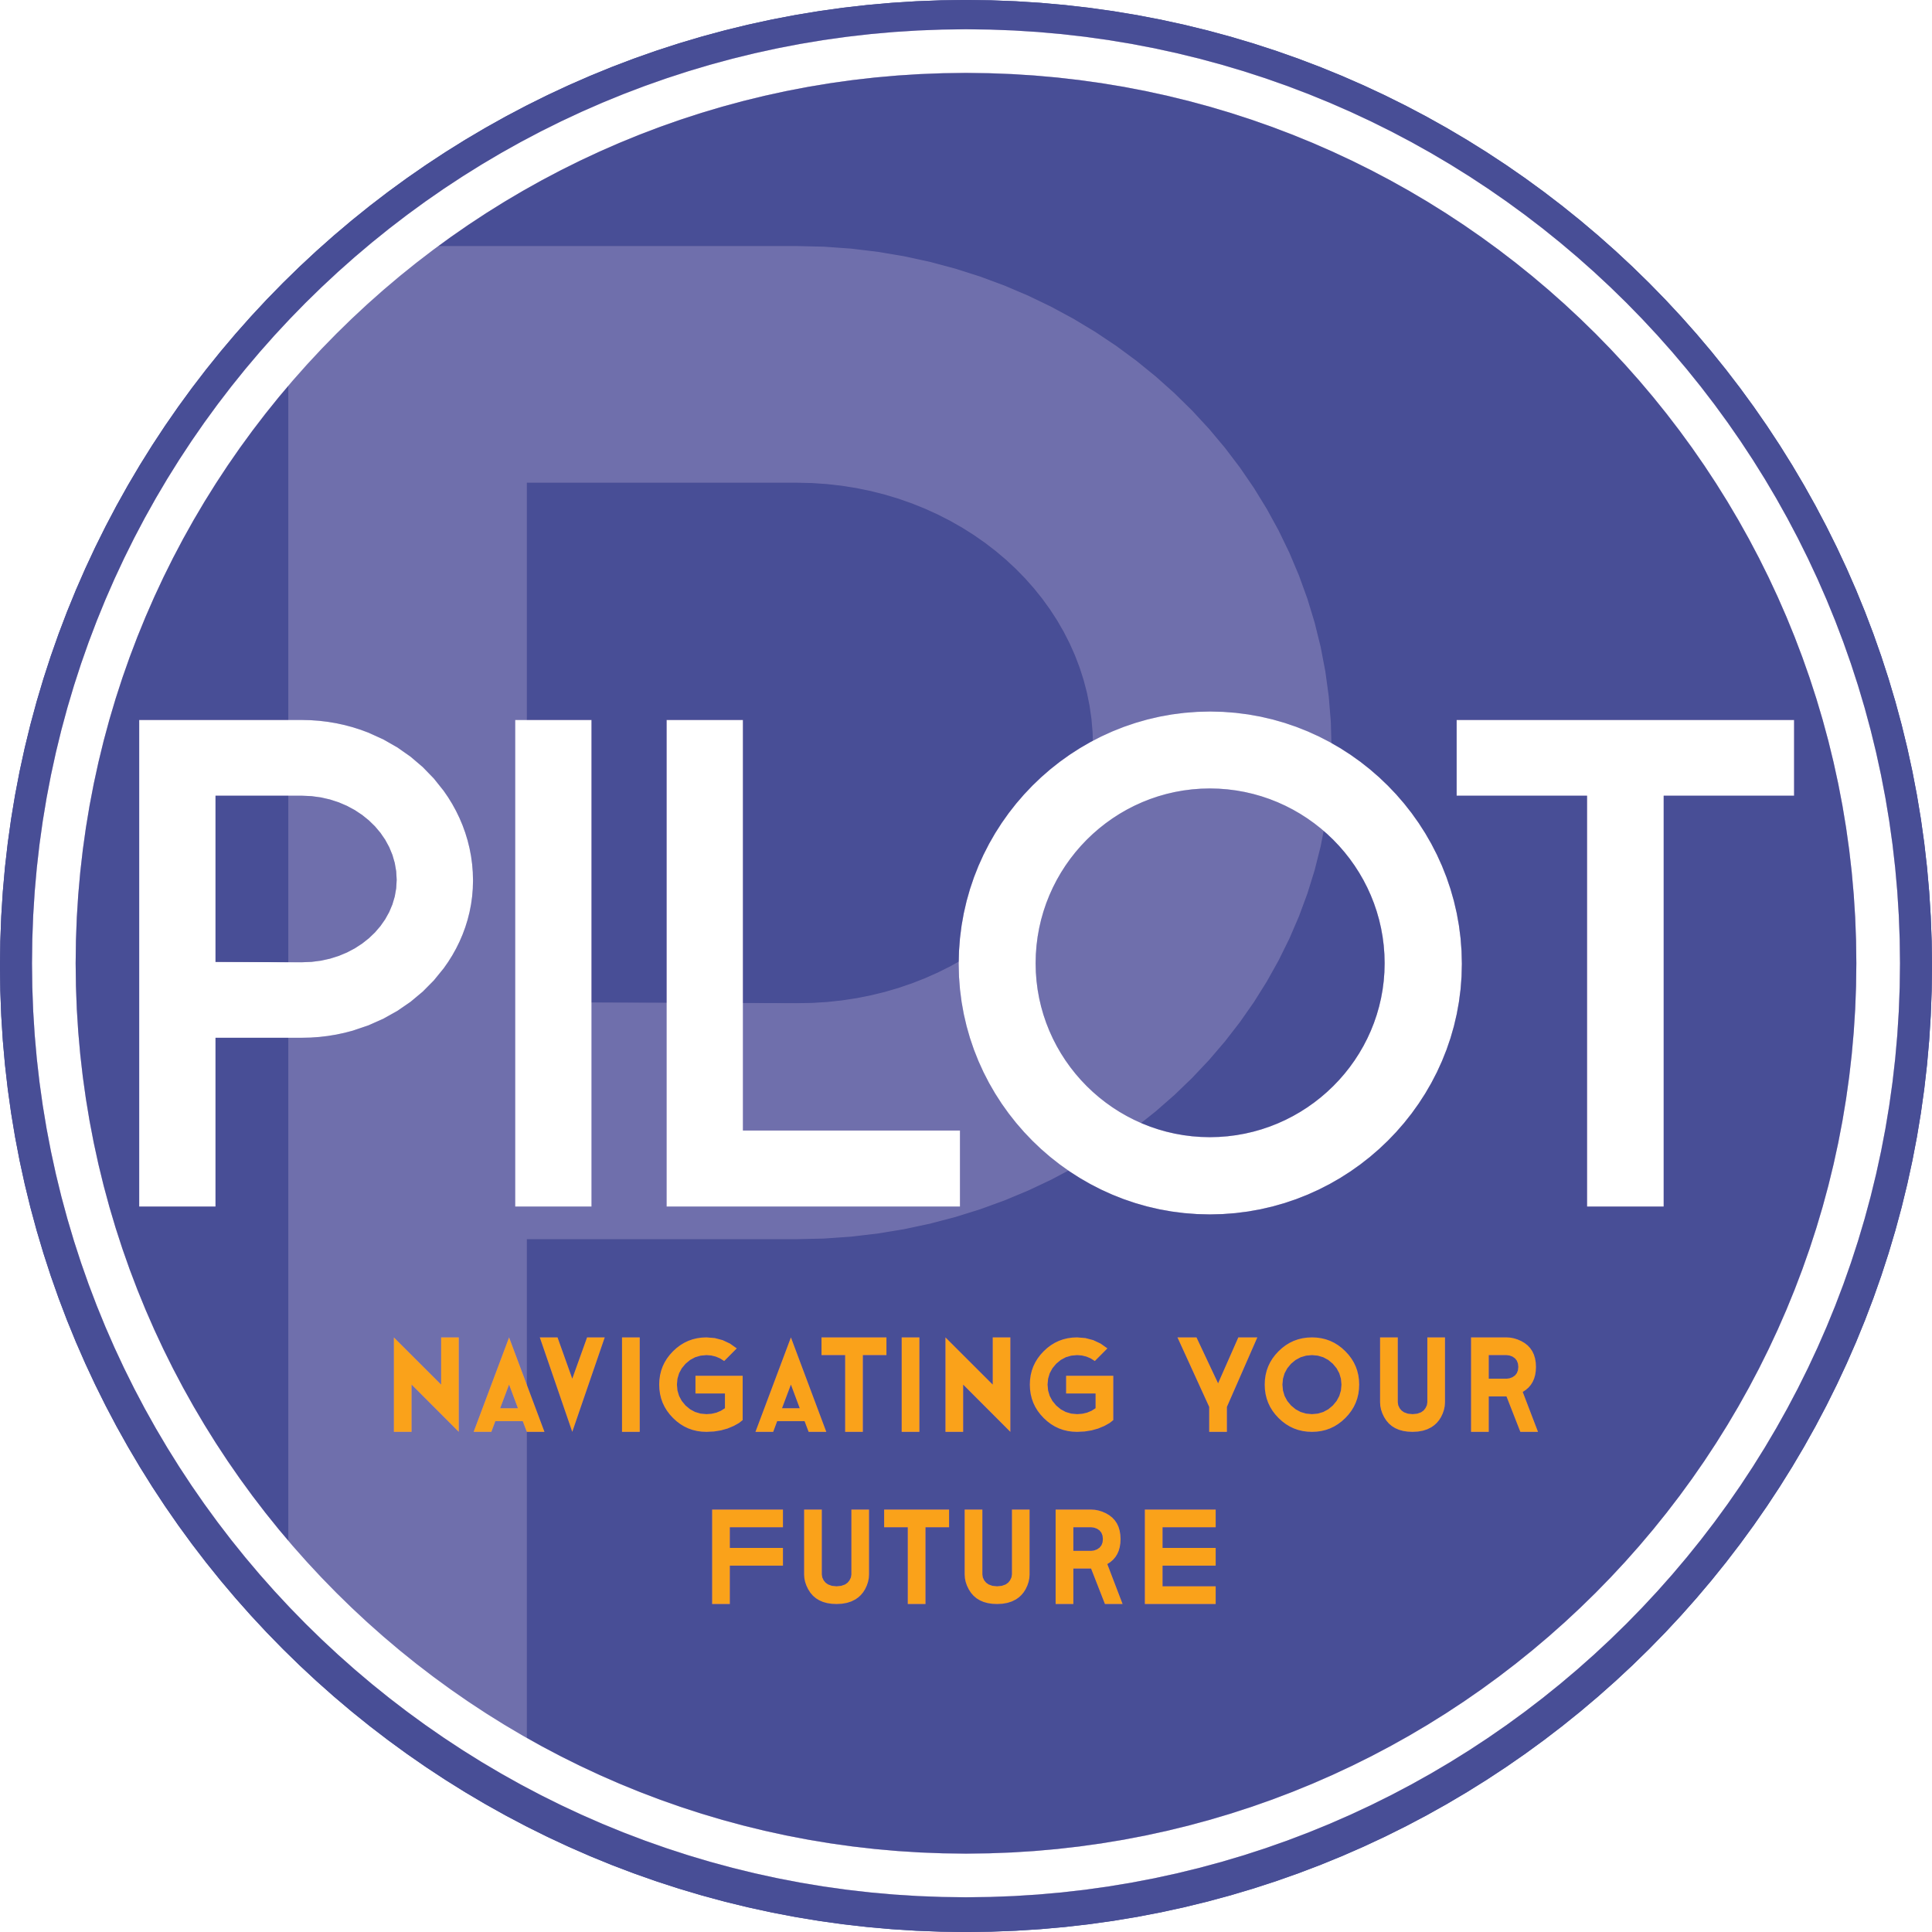 Pilot IMS Logo, National Training Provider @ Pilot IMS